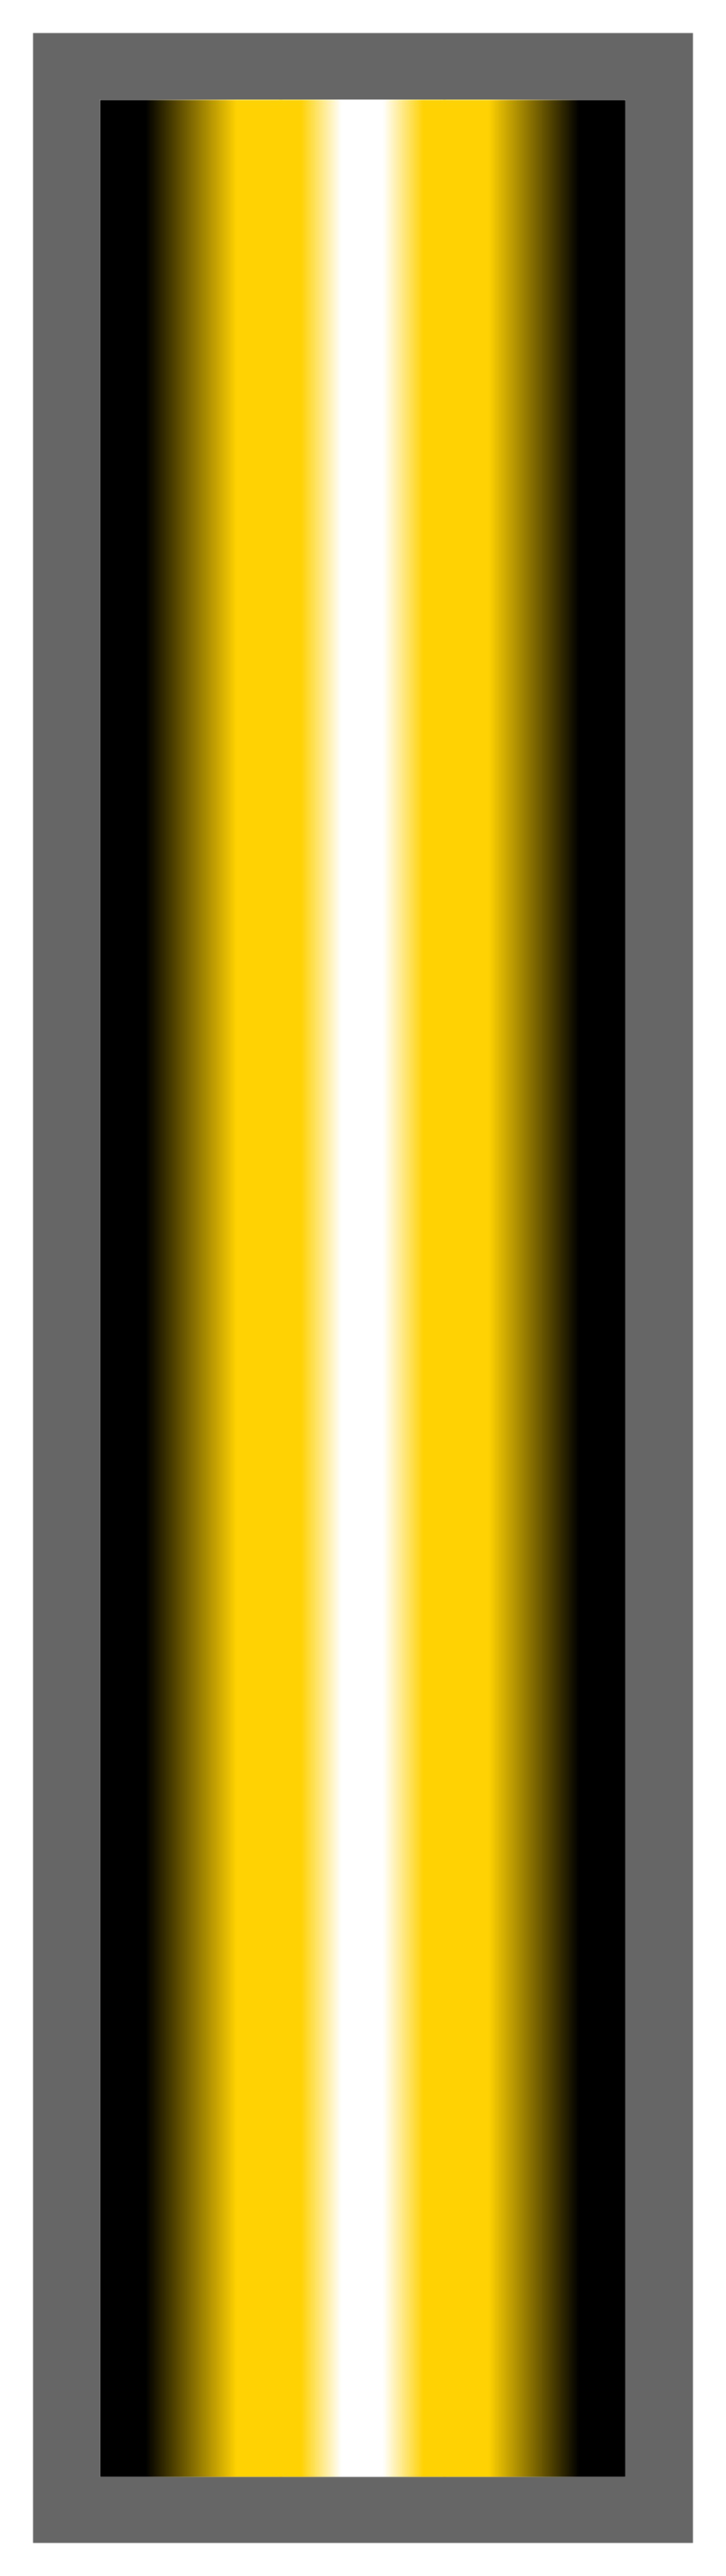 Black-Sun Yellow-White Ombre Stripe